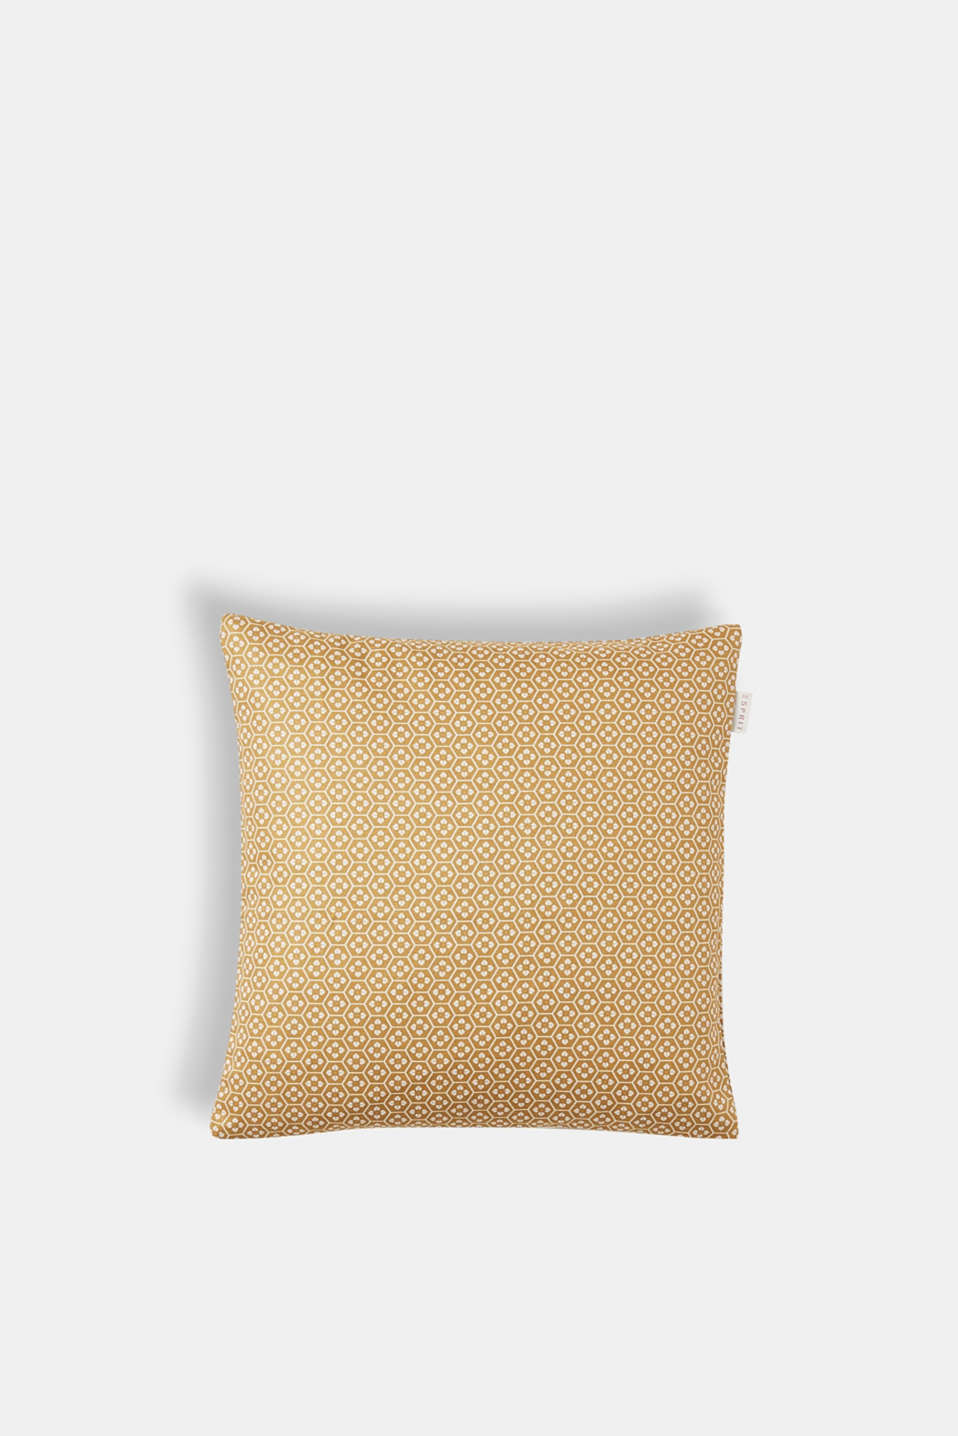 Esprit - Cushion cover with a minimalist pattern